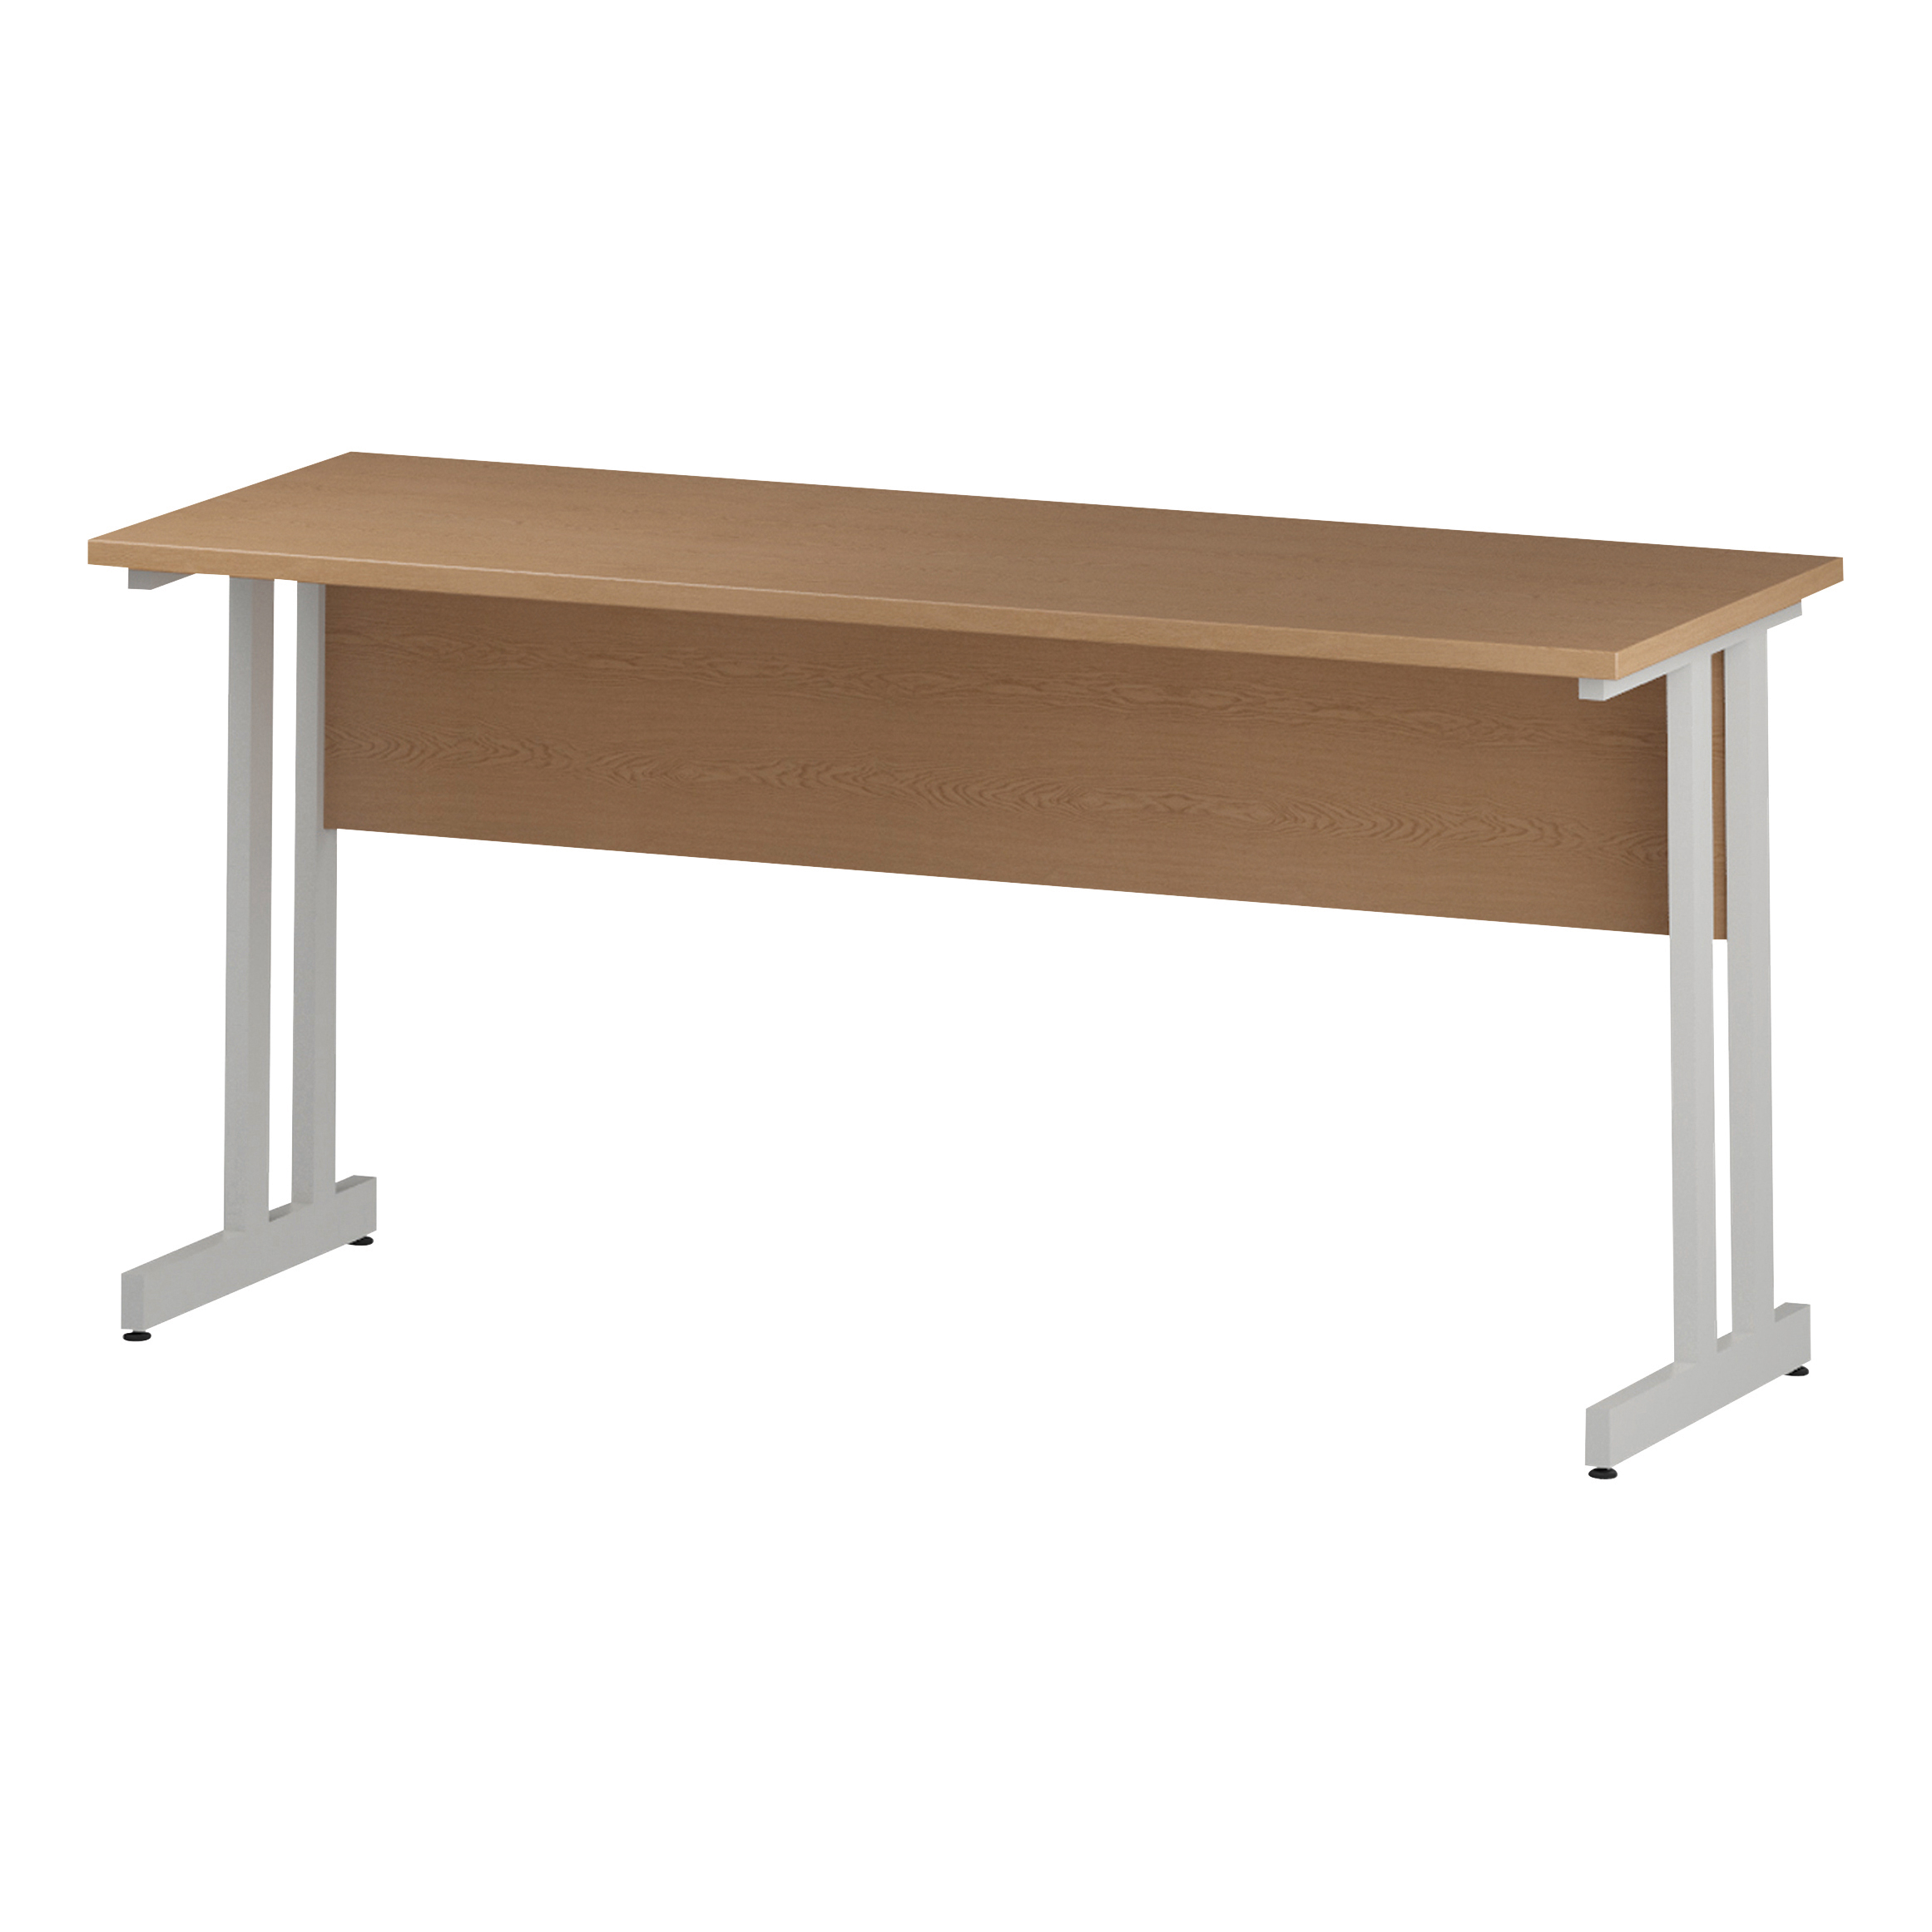 Trexus Rectangular Slim Desk White Cantilever Leg 1600x600mm Oak Ref I002655